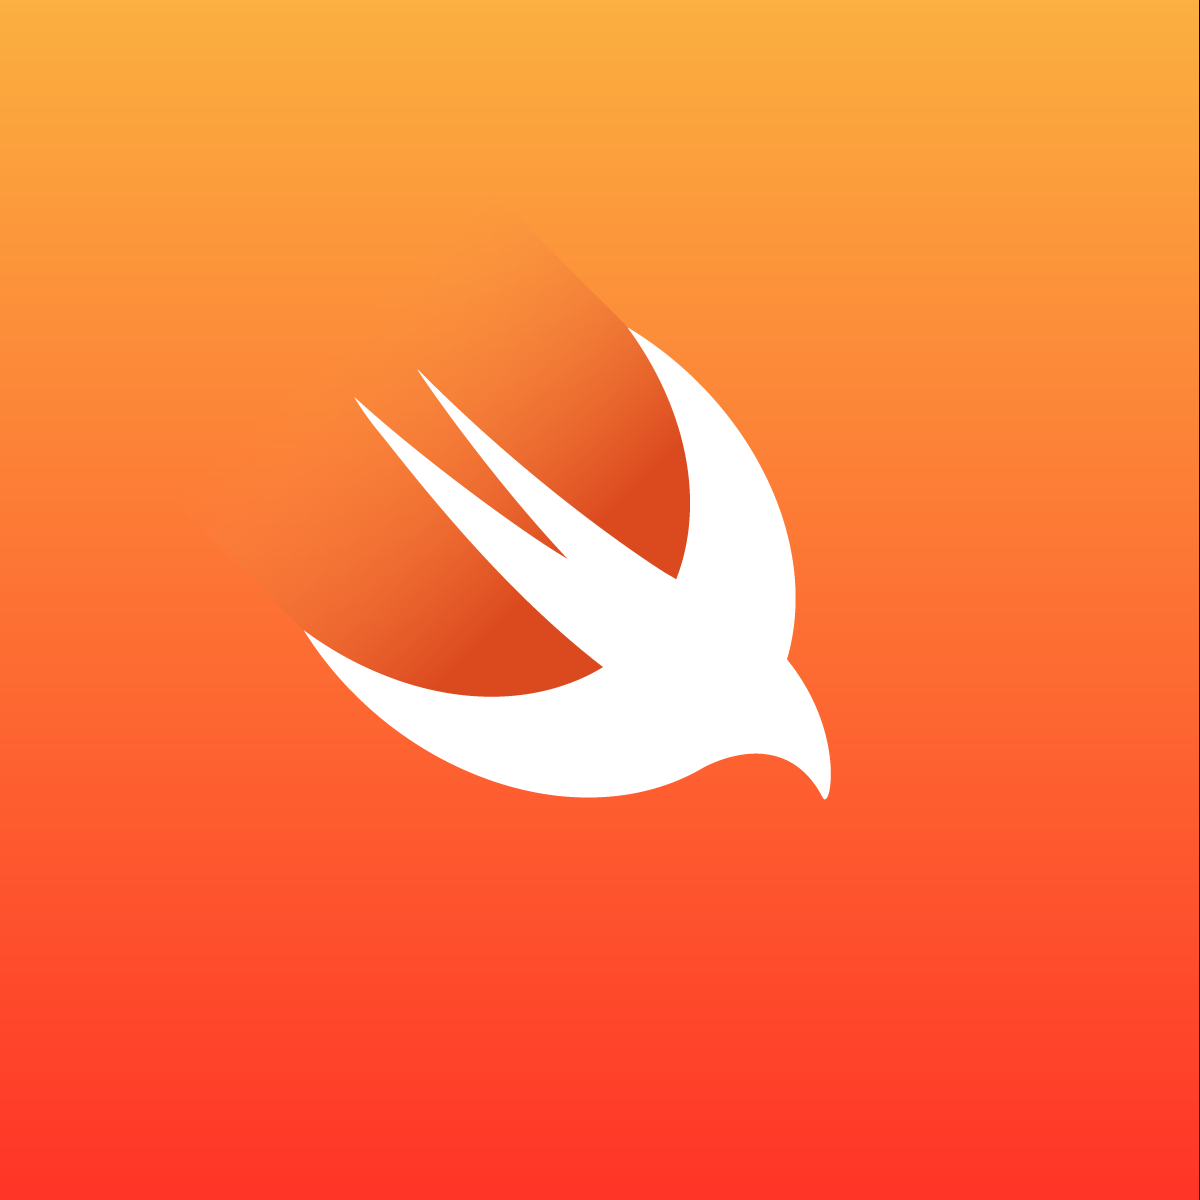 When trying to understand the basics of programming, Swift is a much easier language to learn and work with than Objective-C.